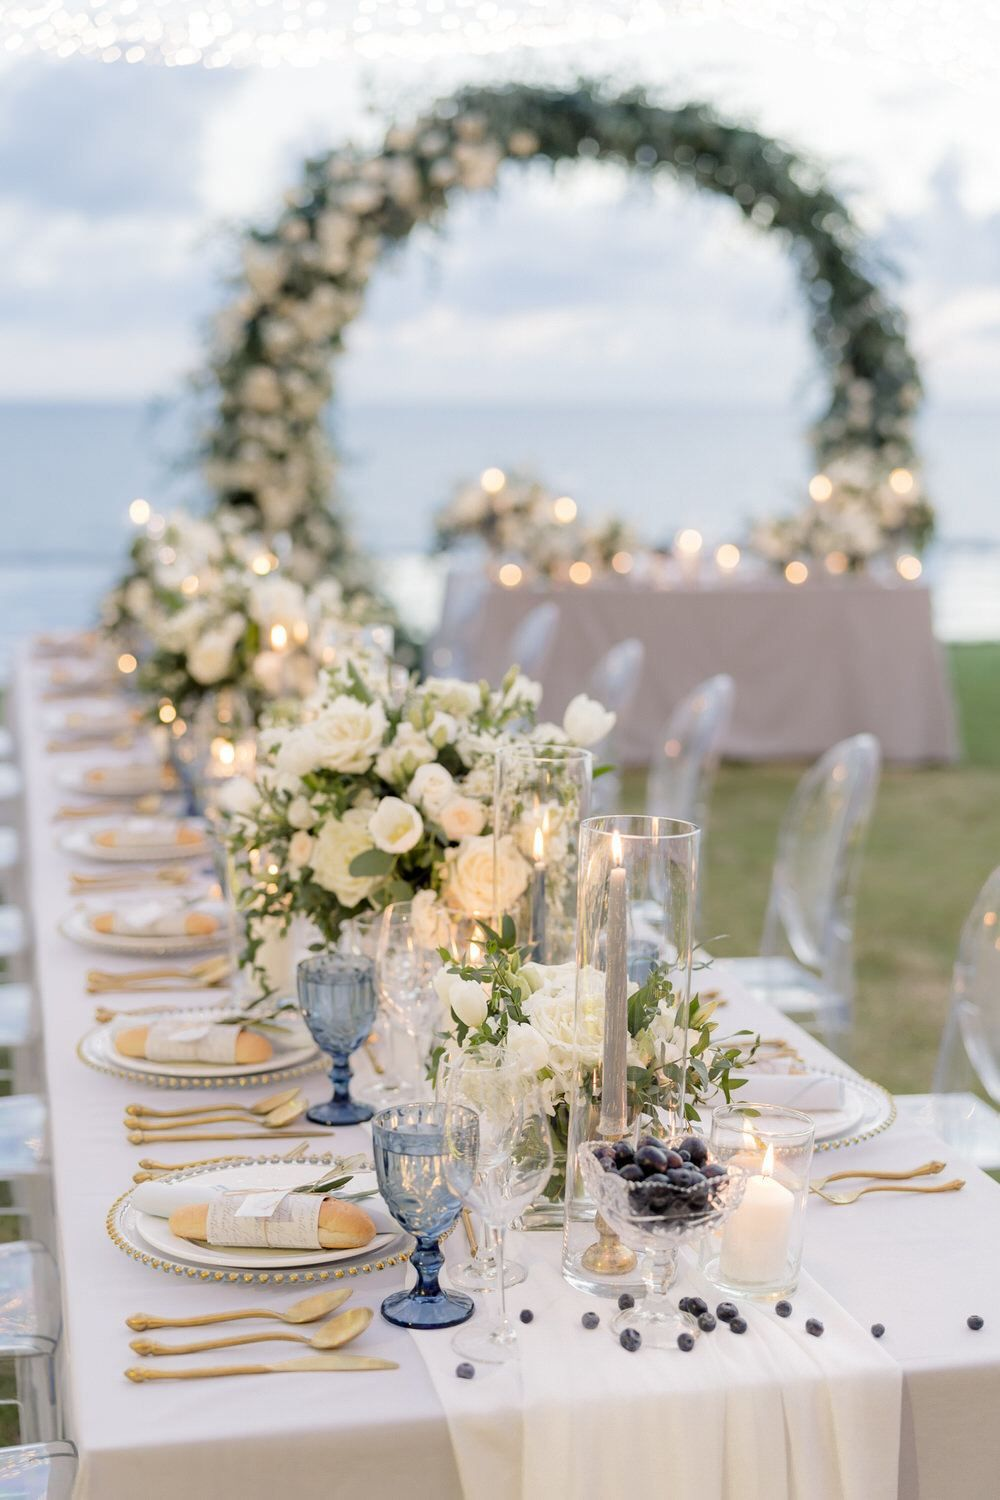 Picture this: A lush circular ceremony arch of white roses on the beaches of Phuket and an intimate outdoor wedding reception under twinkling lights. This gorgeous destination wedding has us packing our bags and jet setting to Thailand!